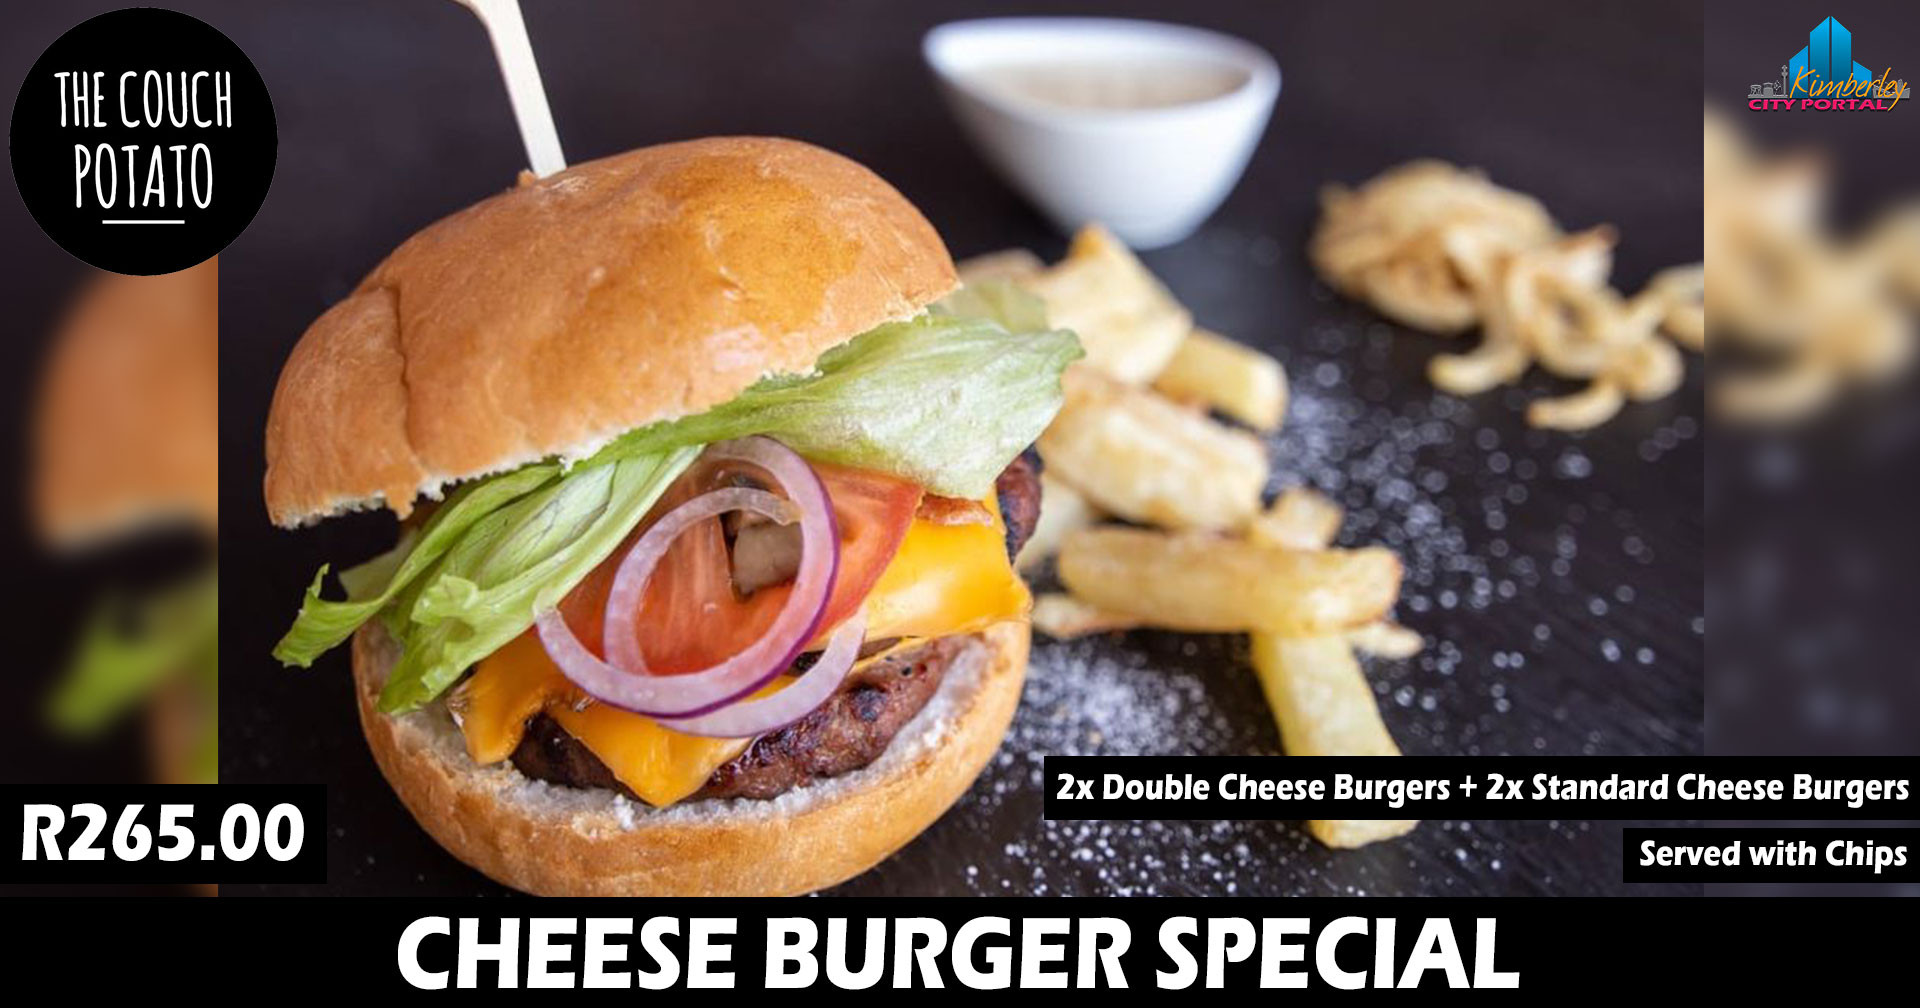 THE_COUCH_POTATO-Cheese_Burger_Special-KCP-SP-20210707-v1_00a